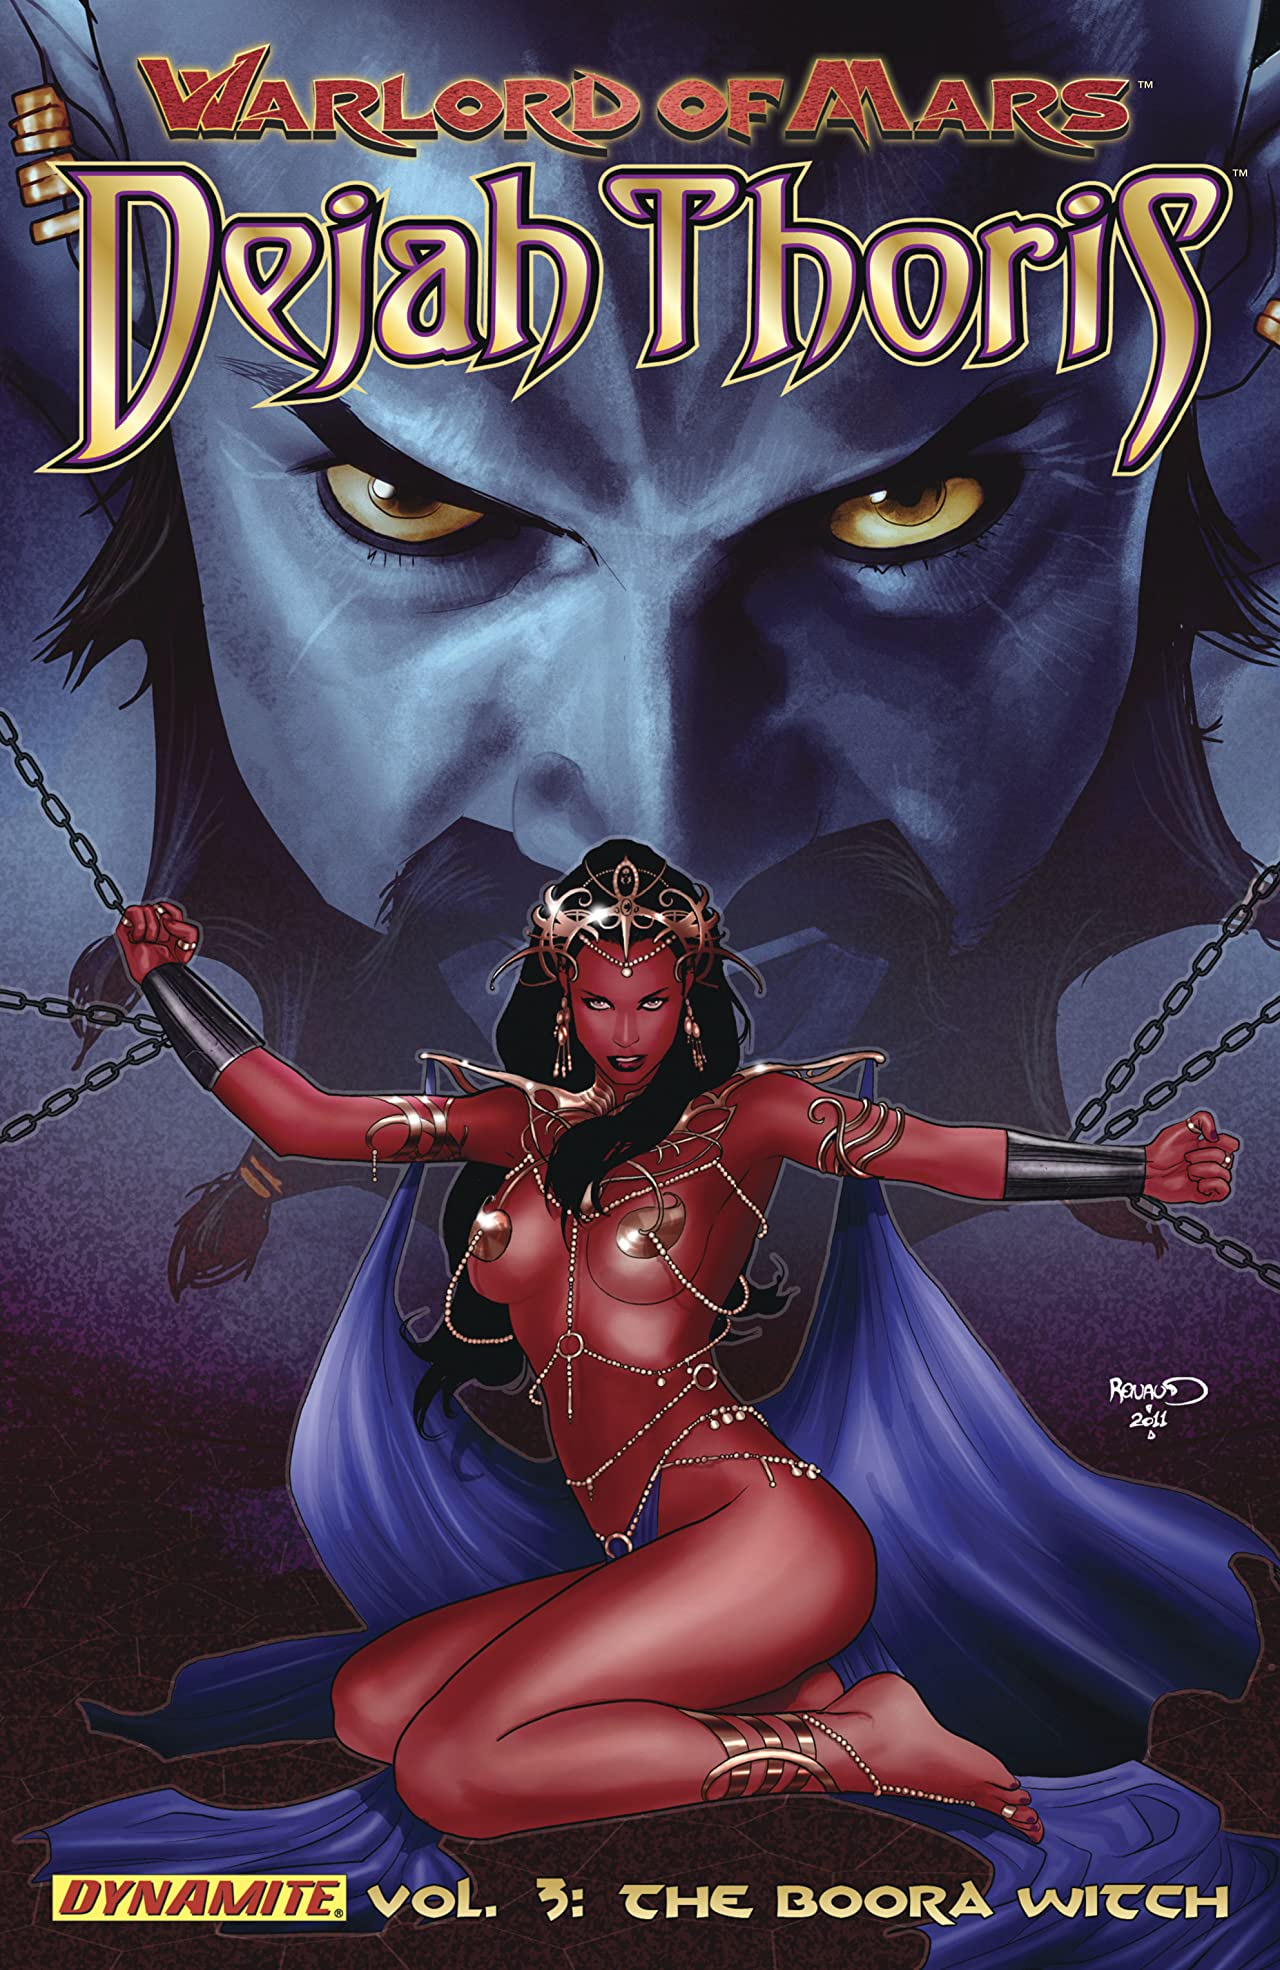 Warlord of Mars: Dejah Thoris Vol. 3: Boora Witch